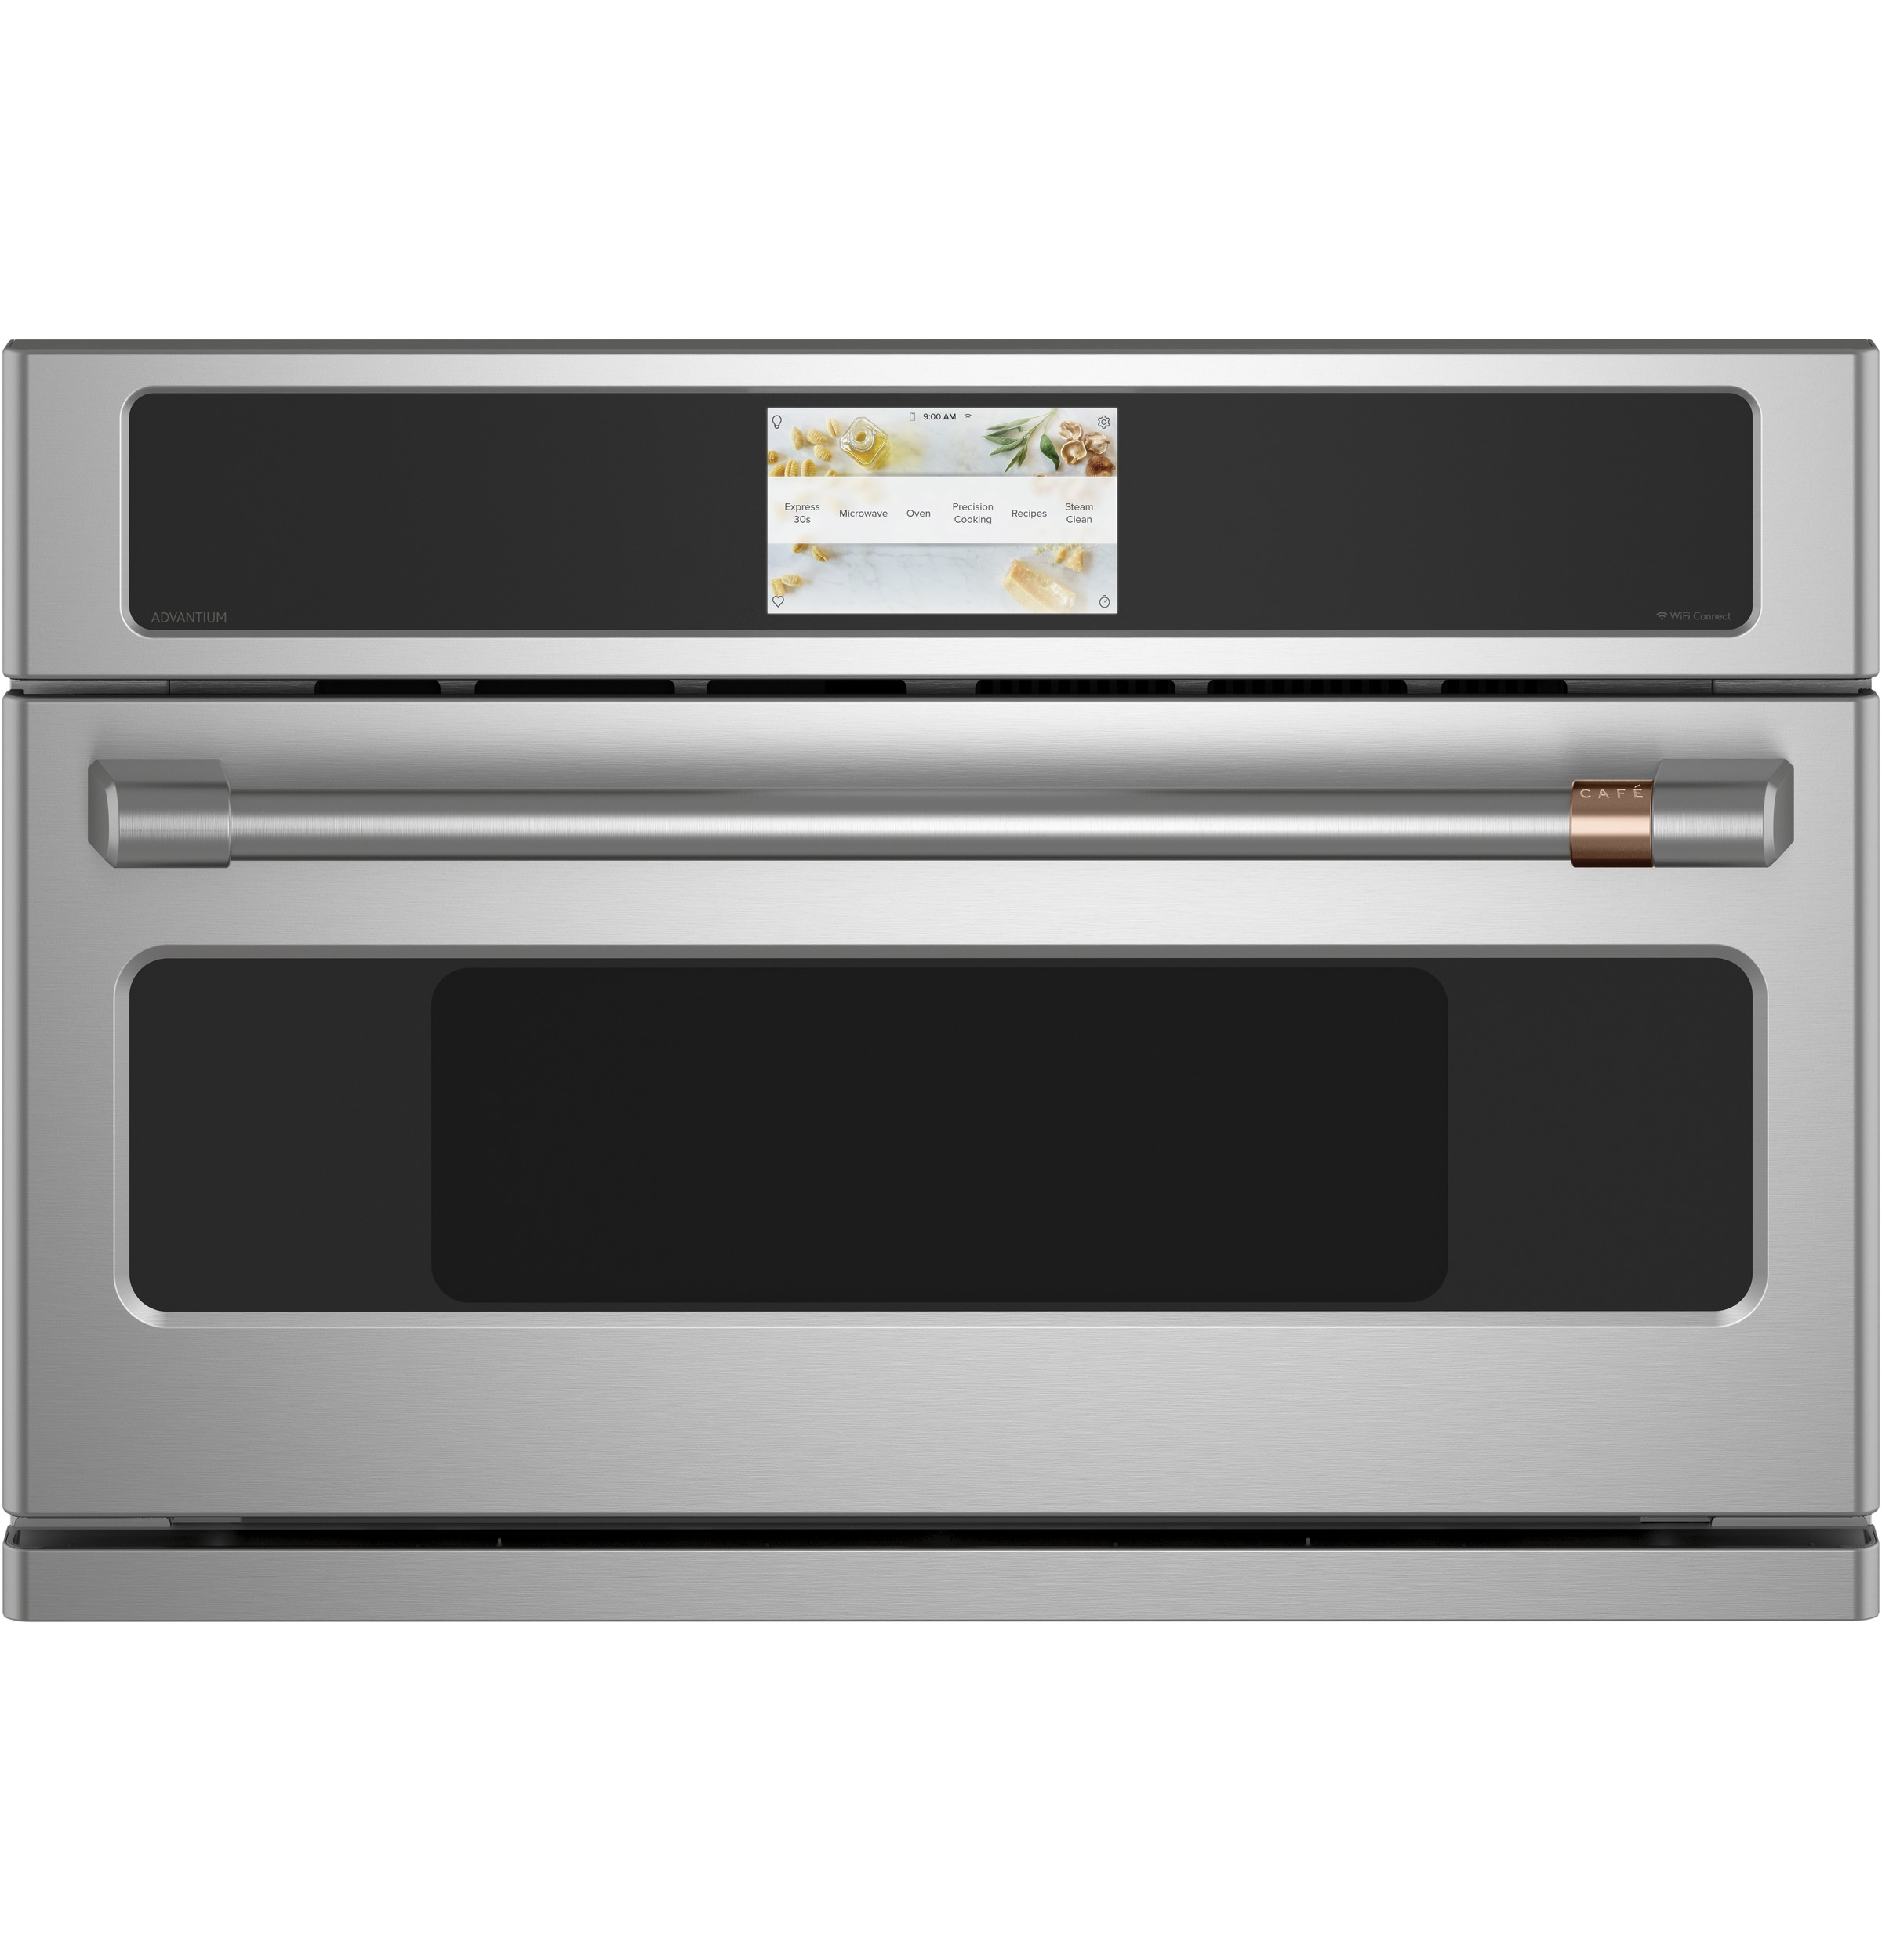 "Cafe Cafe™ 30"" Smart Five in One Oven with 120V Advantium® Technology"